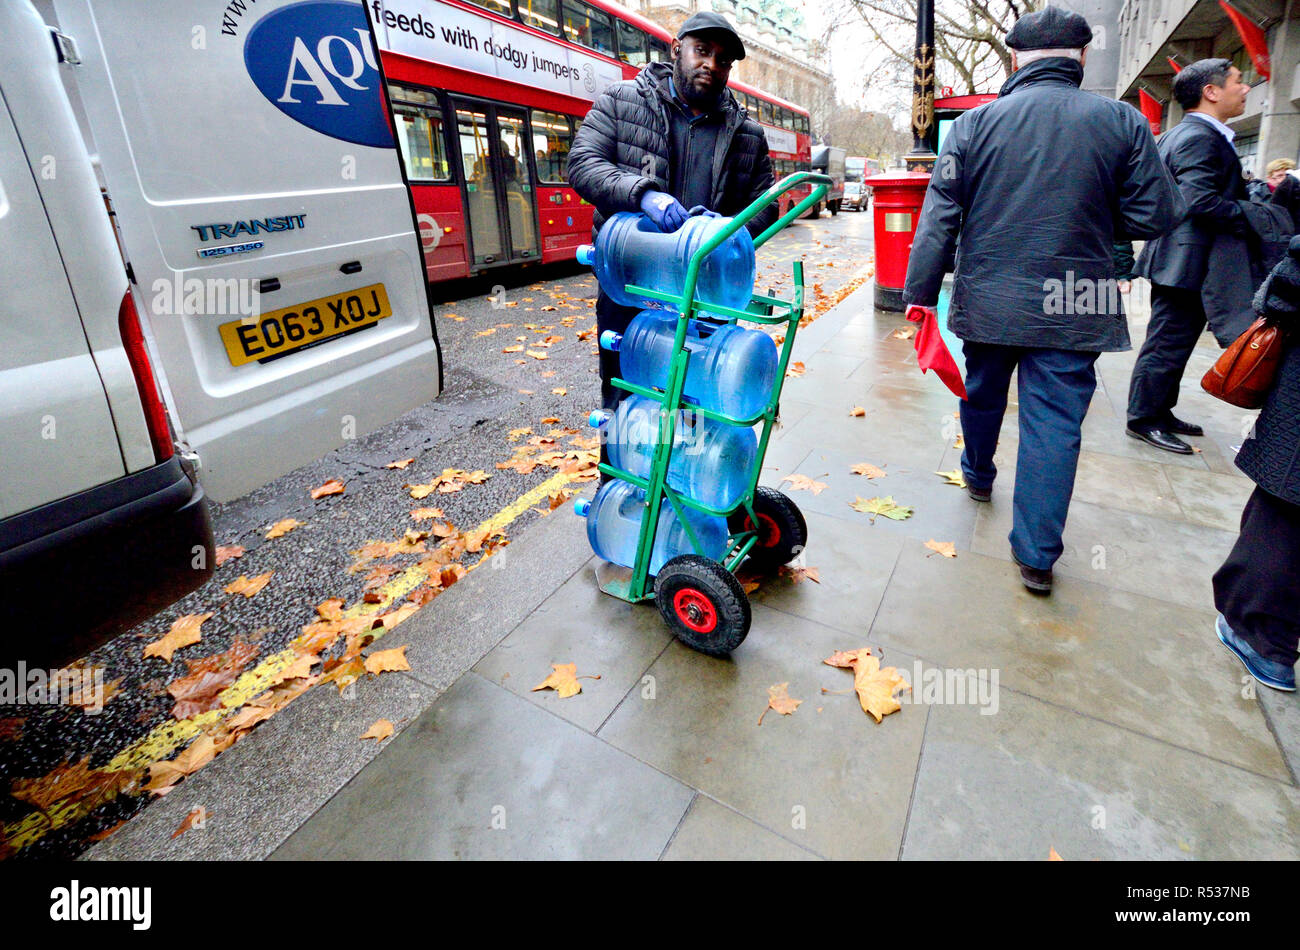 Man delivering water for water coolers and parked on a double yellow line, the Strand, London, England, UK. - Stock Image